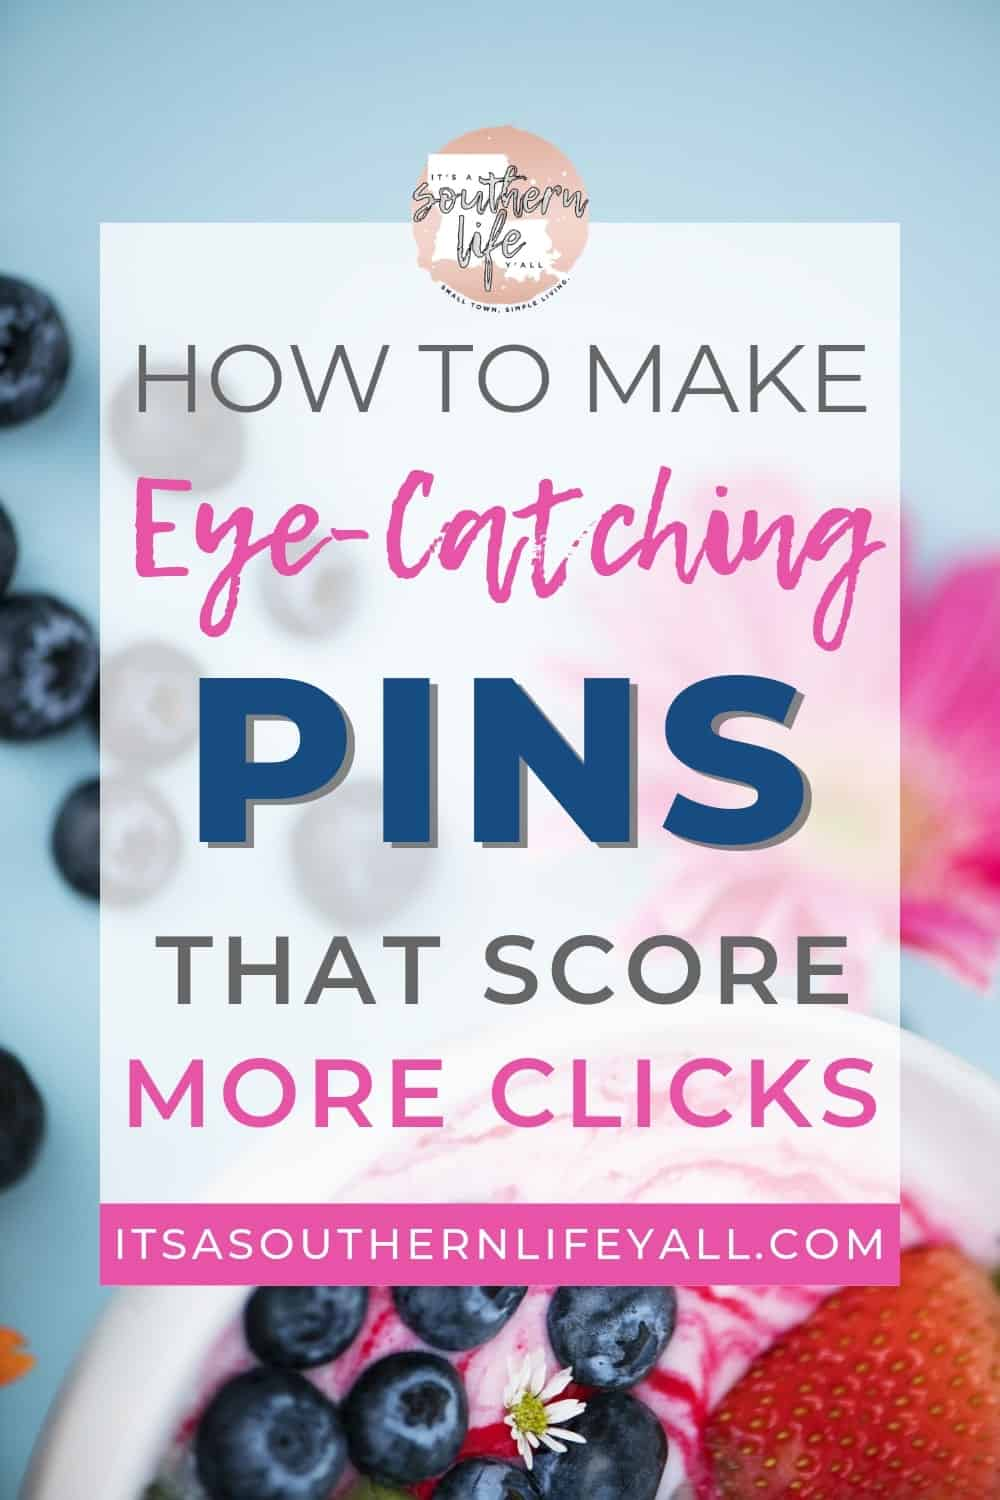 Colorful image of berries and a flower with How to make eye-catching pins that score more clicks text overlay.